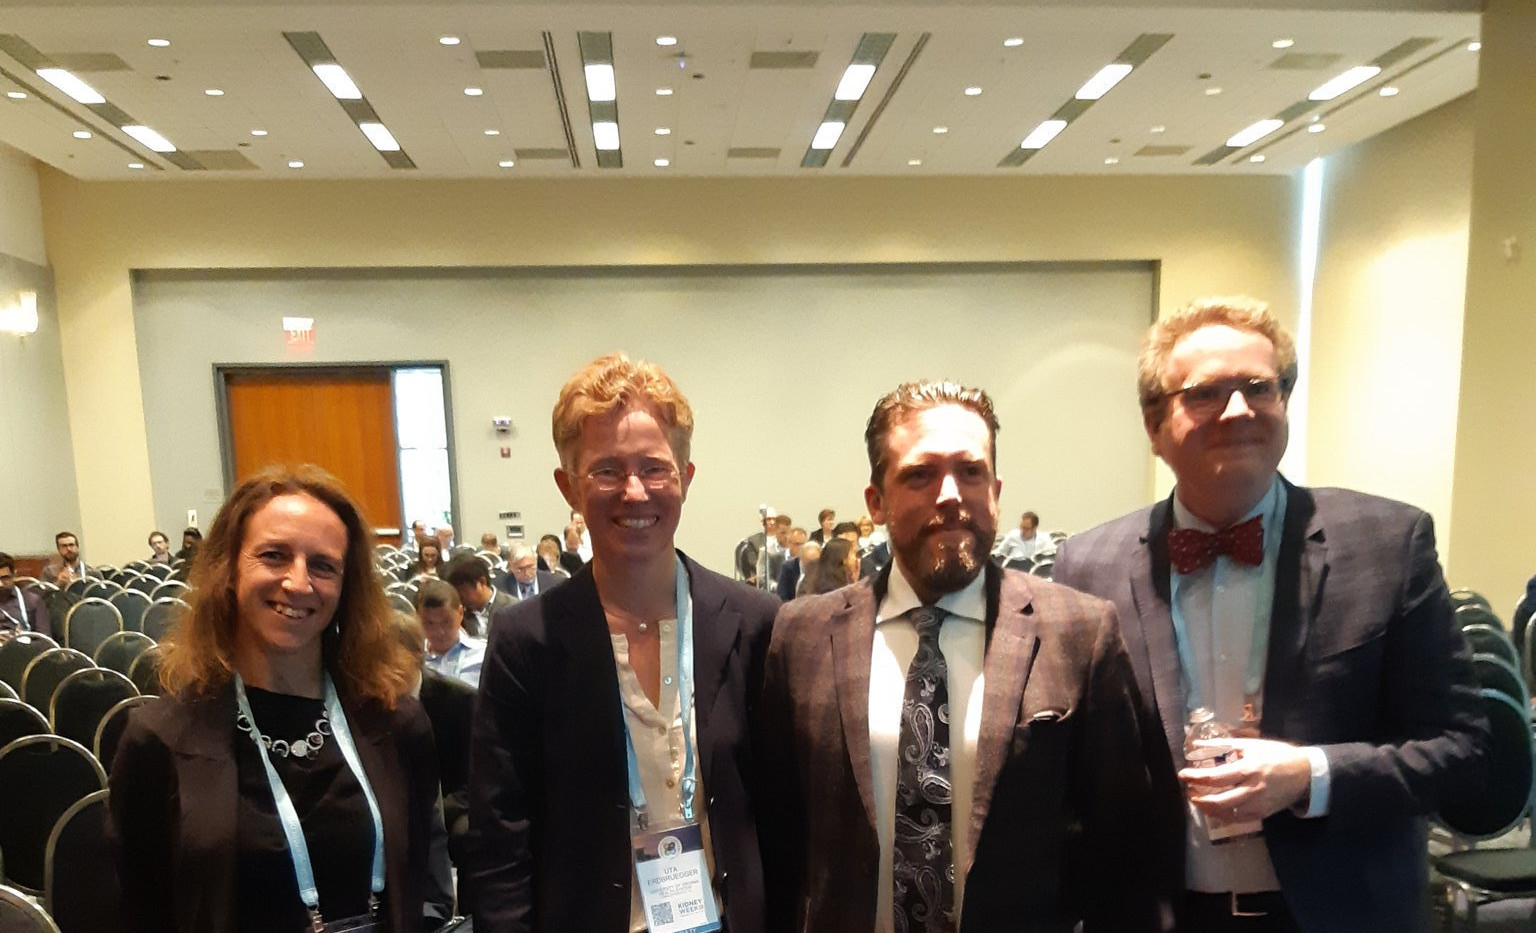 Dr Witwer had a talk at ASN Kidney week for the EVs session beside Christina Grange, Uta Erdbruegger and J. Brian Byrd